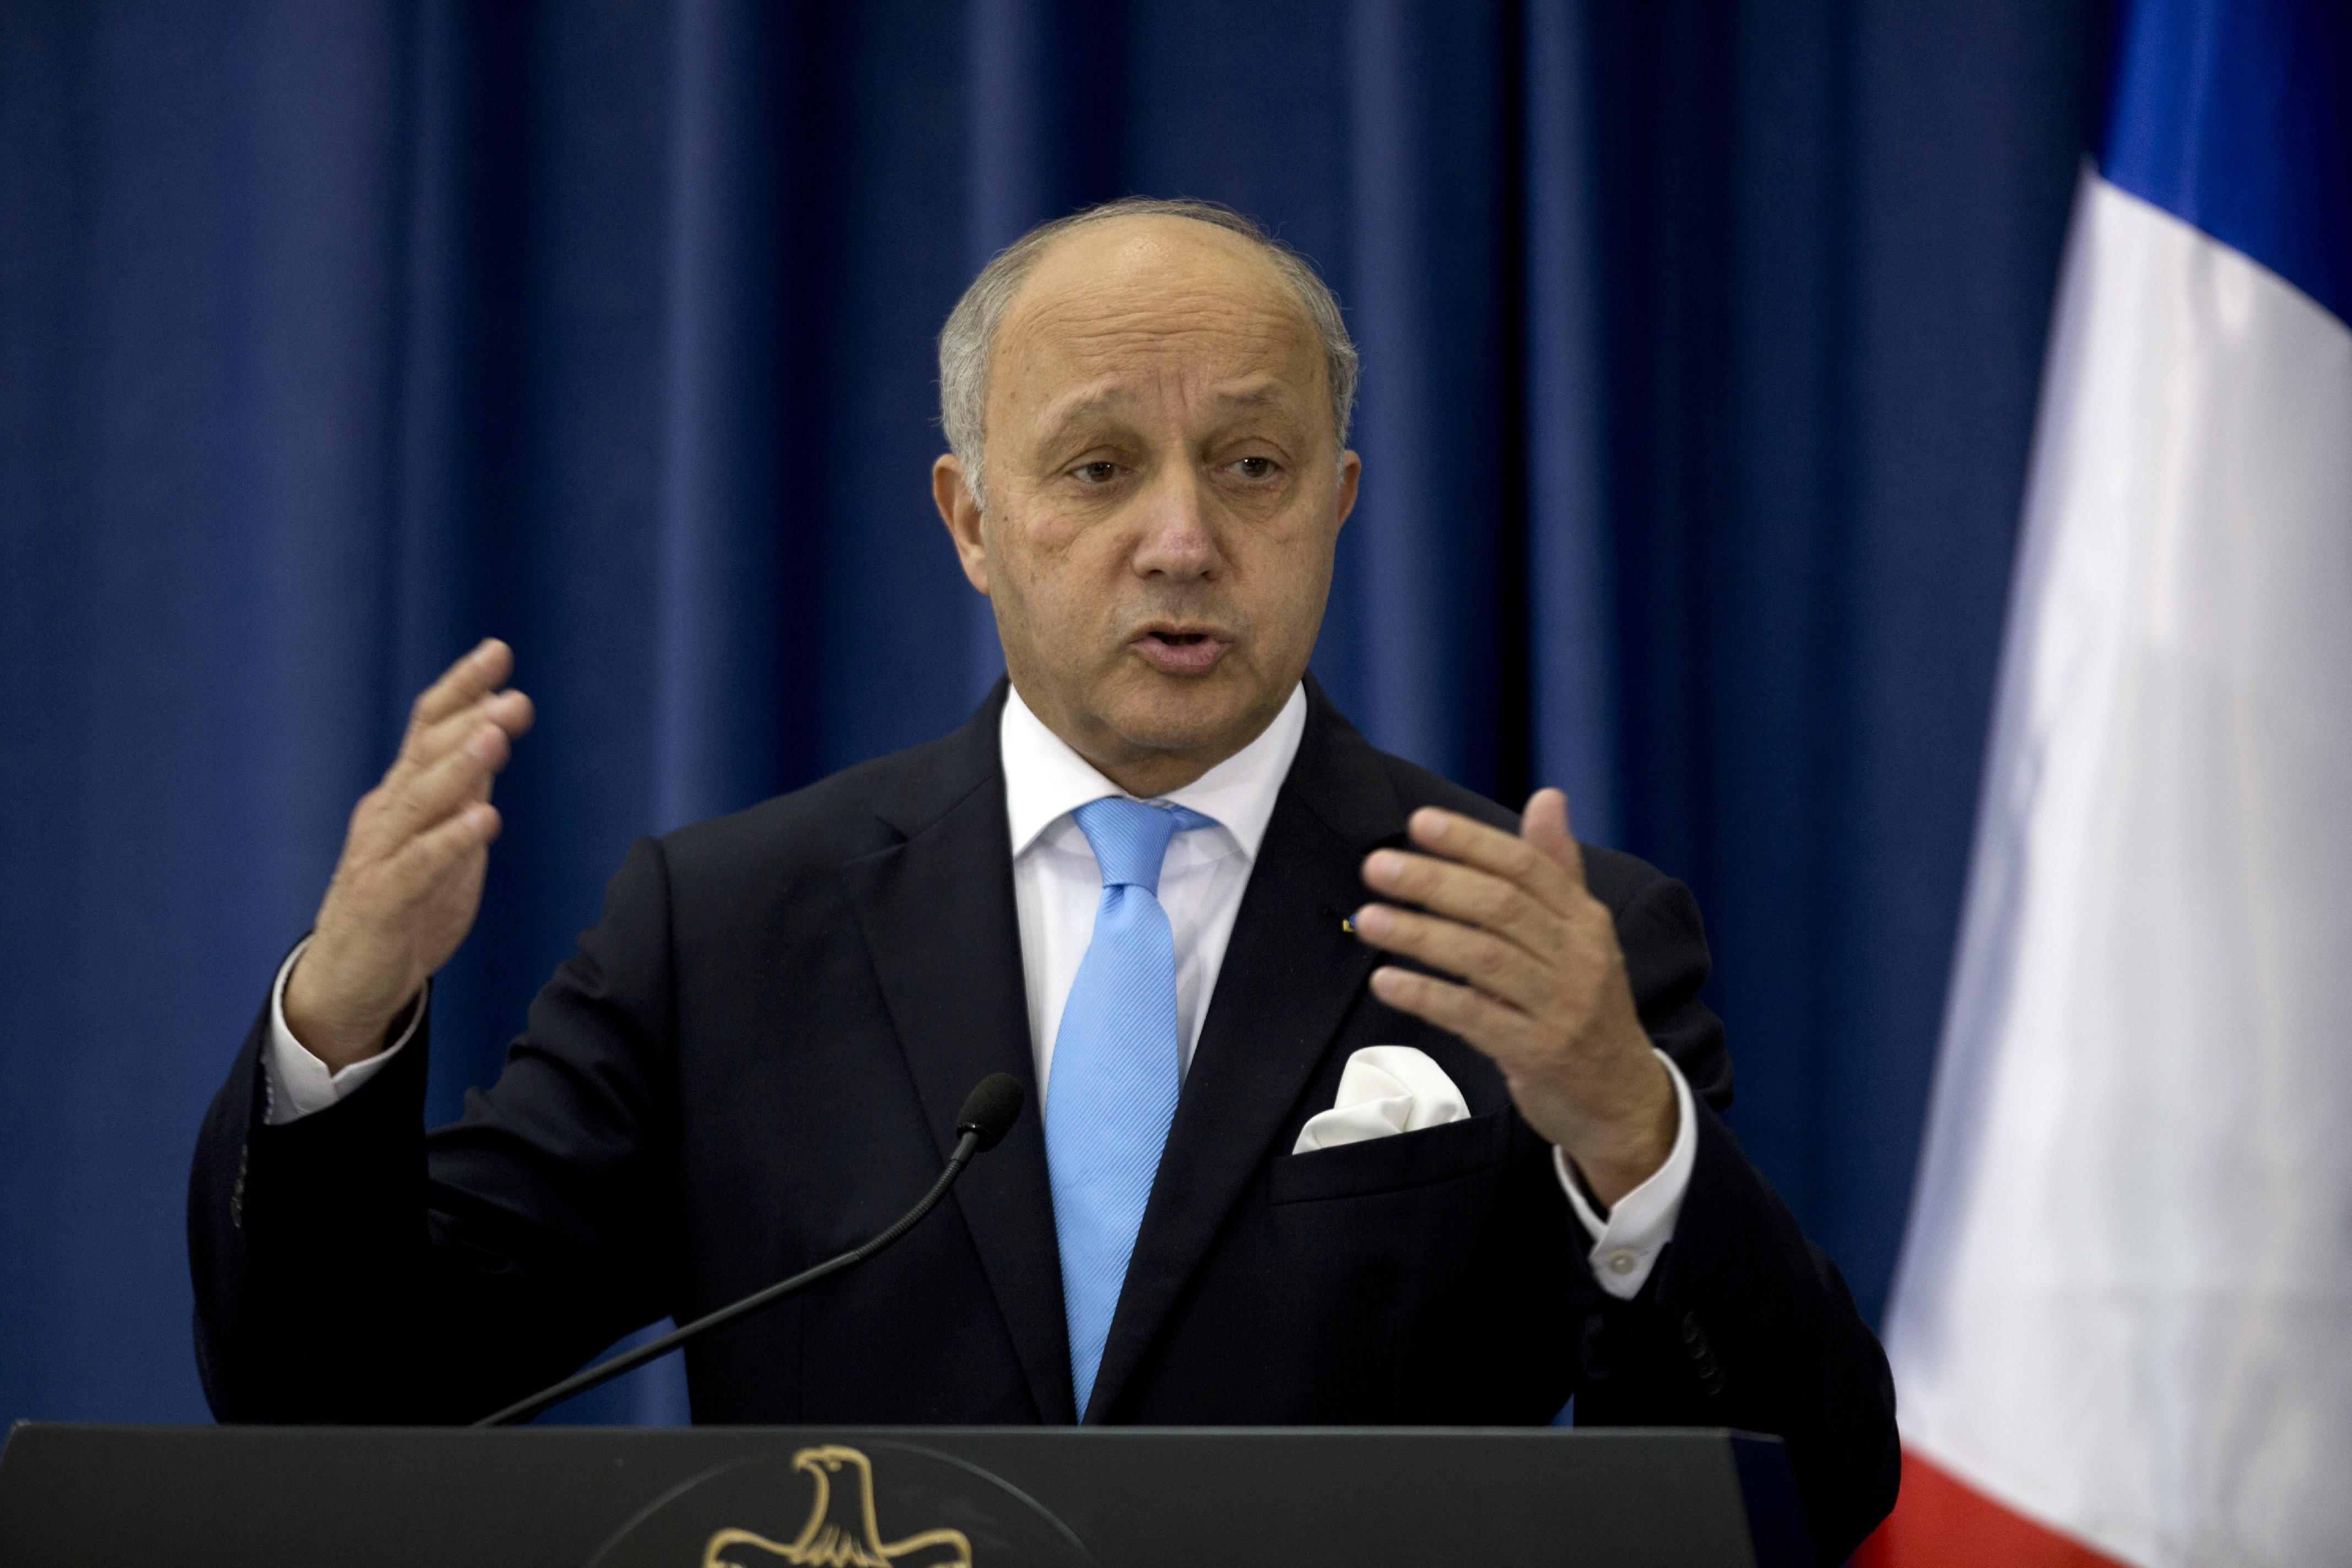 French Foreign Minister Laurent Fabius speaks during a press conference with Palestinian Foreign Minister Riyad Al-Maliki in the West Bank city of Ramallah, Sunday, June 21, 2015. (AP Photo/Majdi Mohammed)